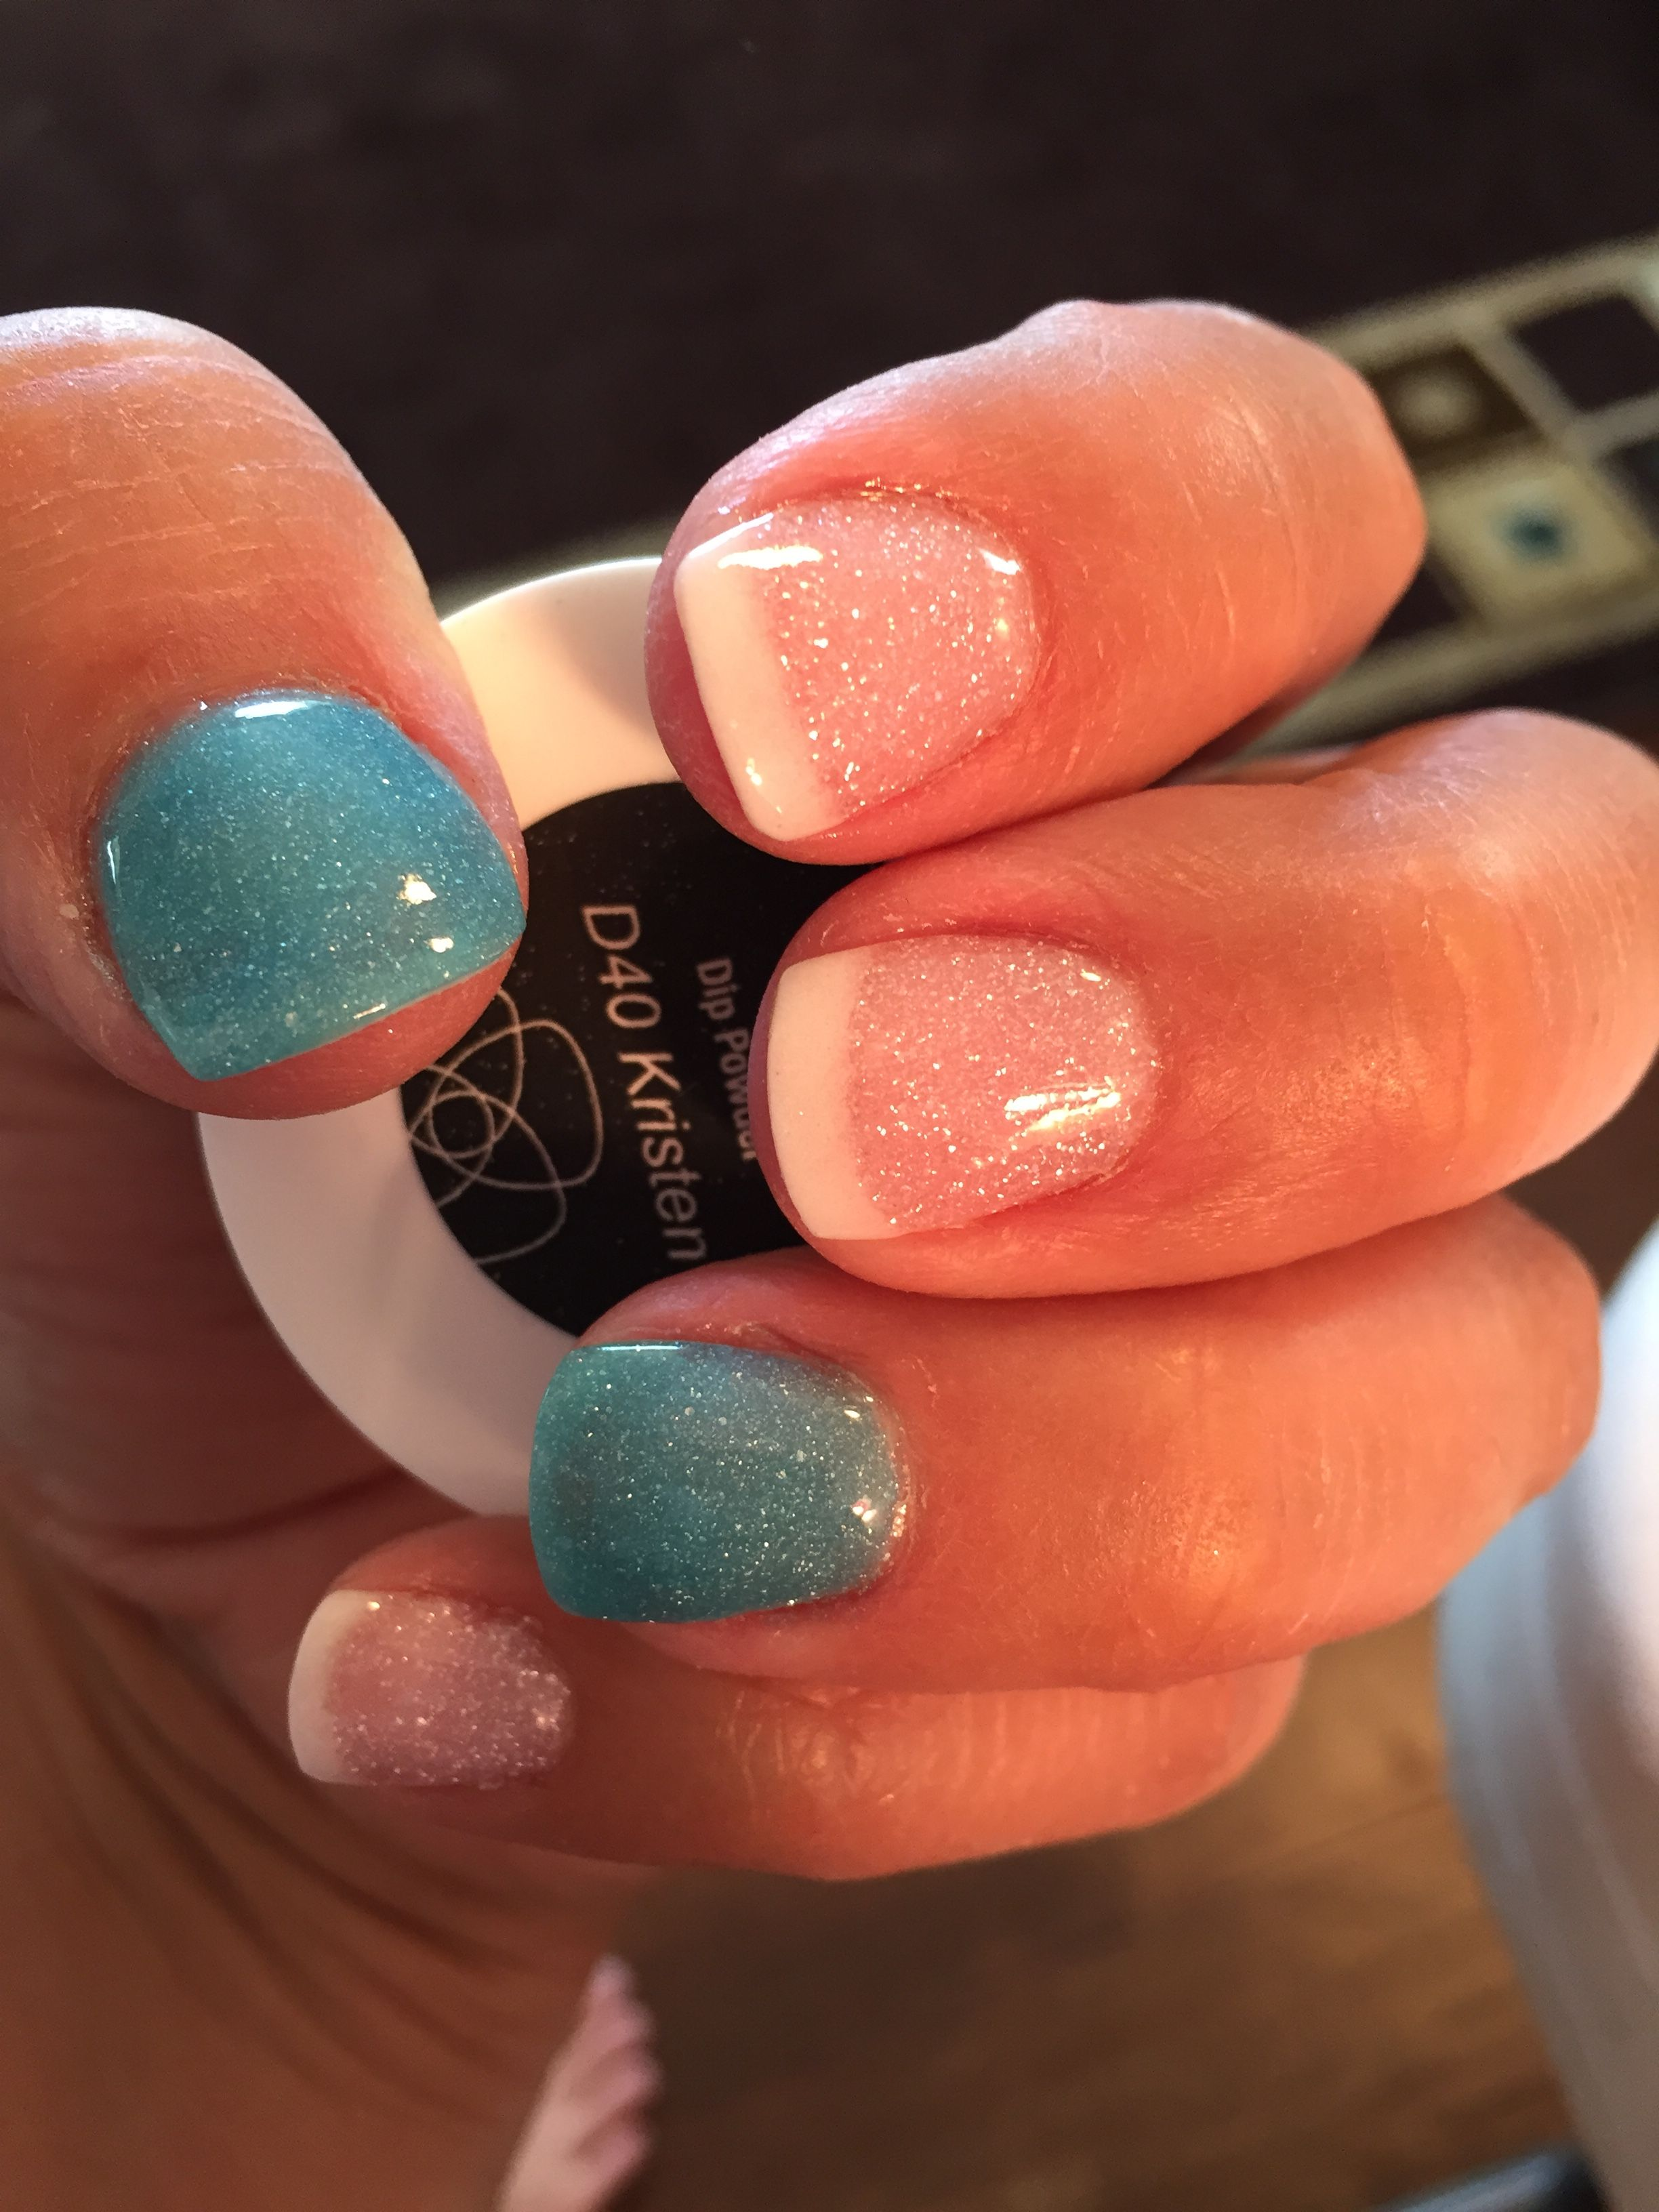 Revel Nail Dip Powder Kristen Blue Bubbly Clear Sparkle Bette Marshmallow White